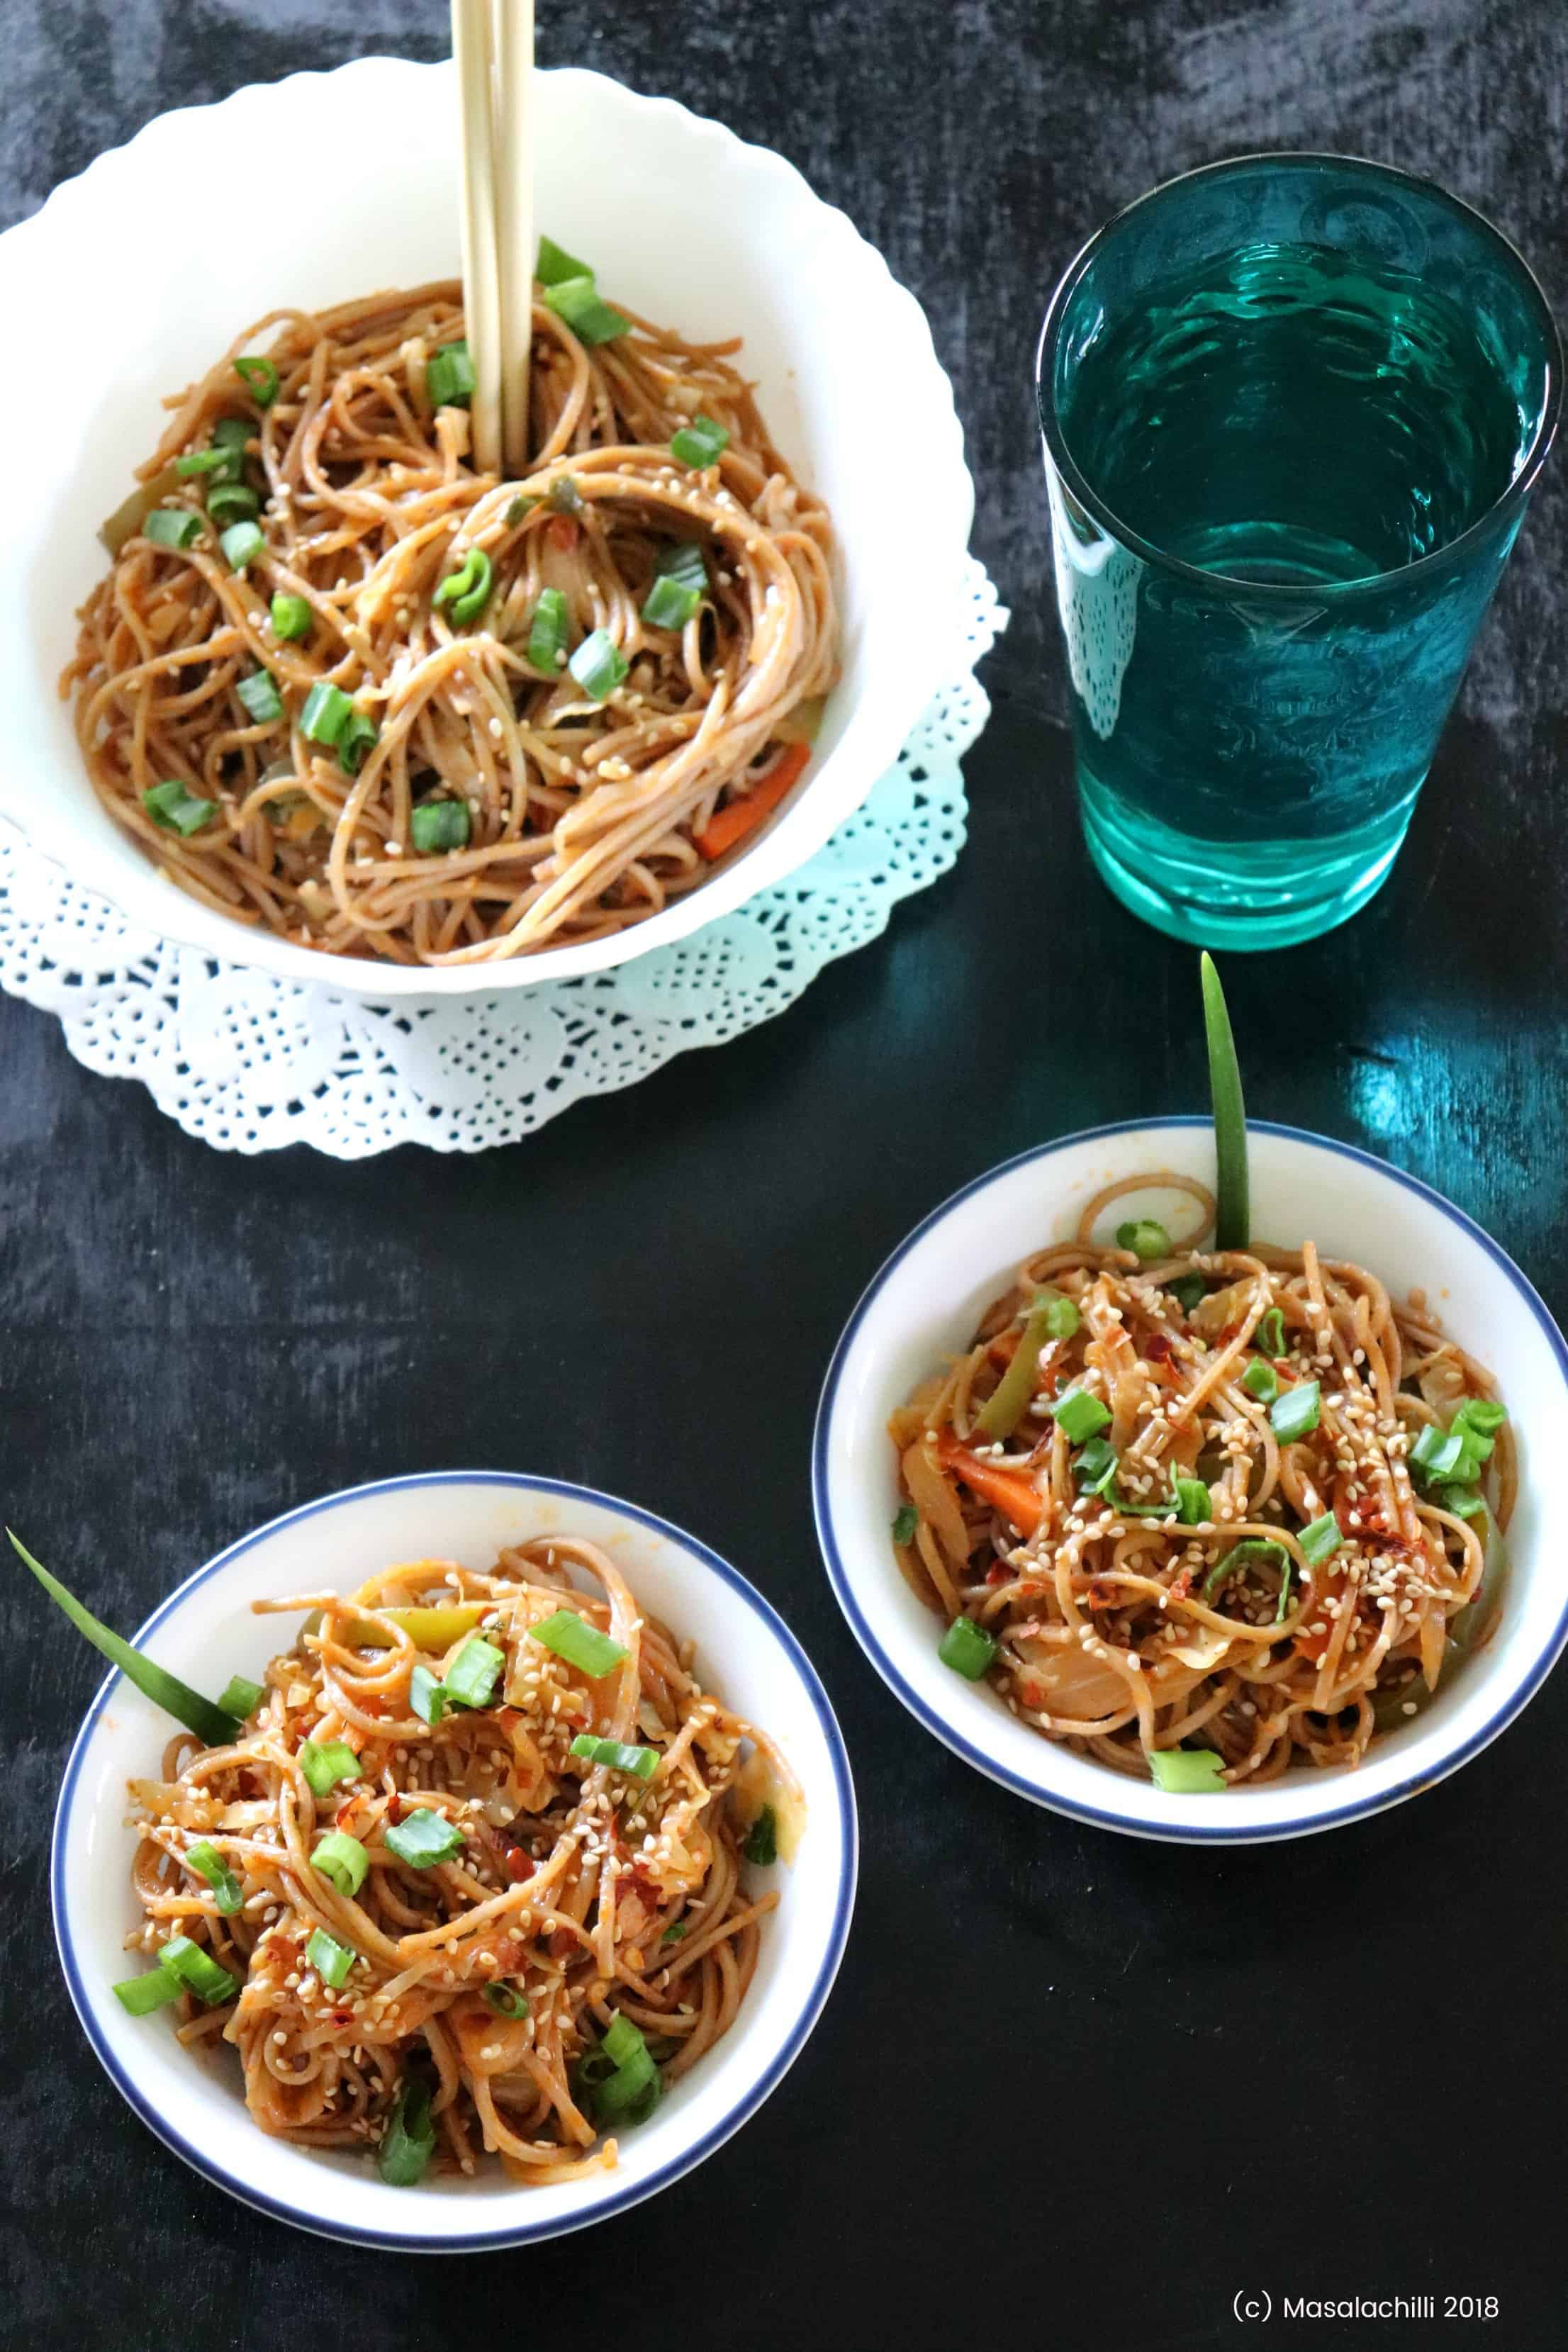 Spicy Vegetable Hakka Noodles